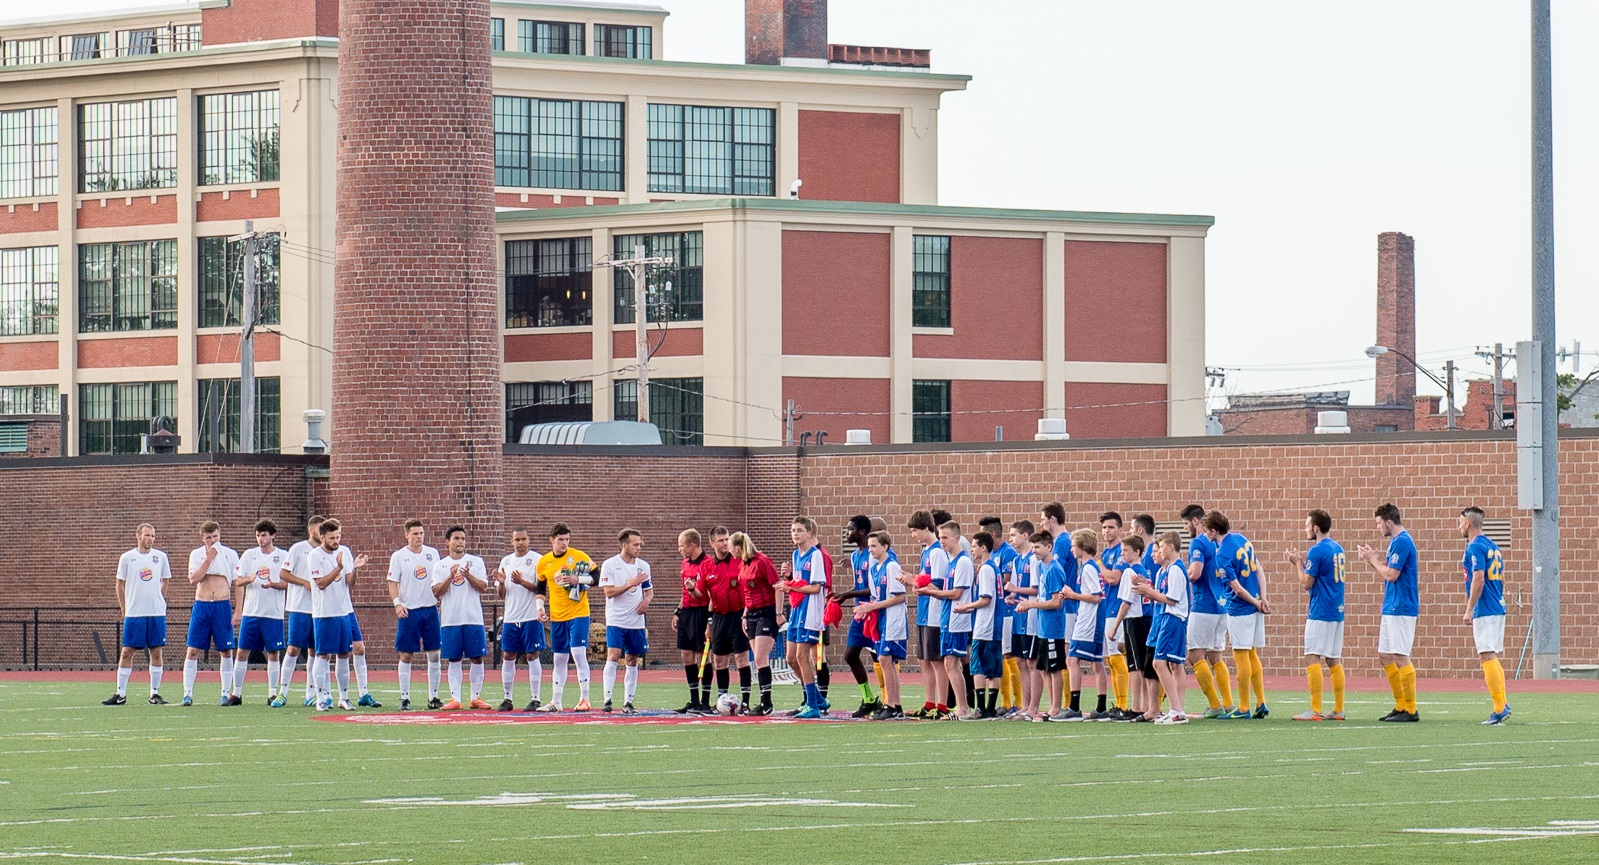 The rivalry match between FC Buffalo and Erie, pictured in 2016, is back on tap for the coming season.(Matt Weinberg/Special to The News)